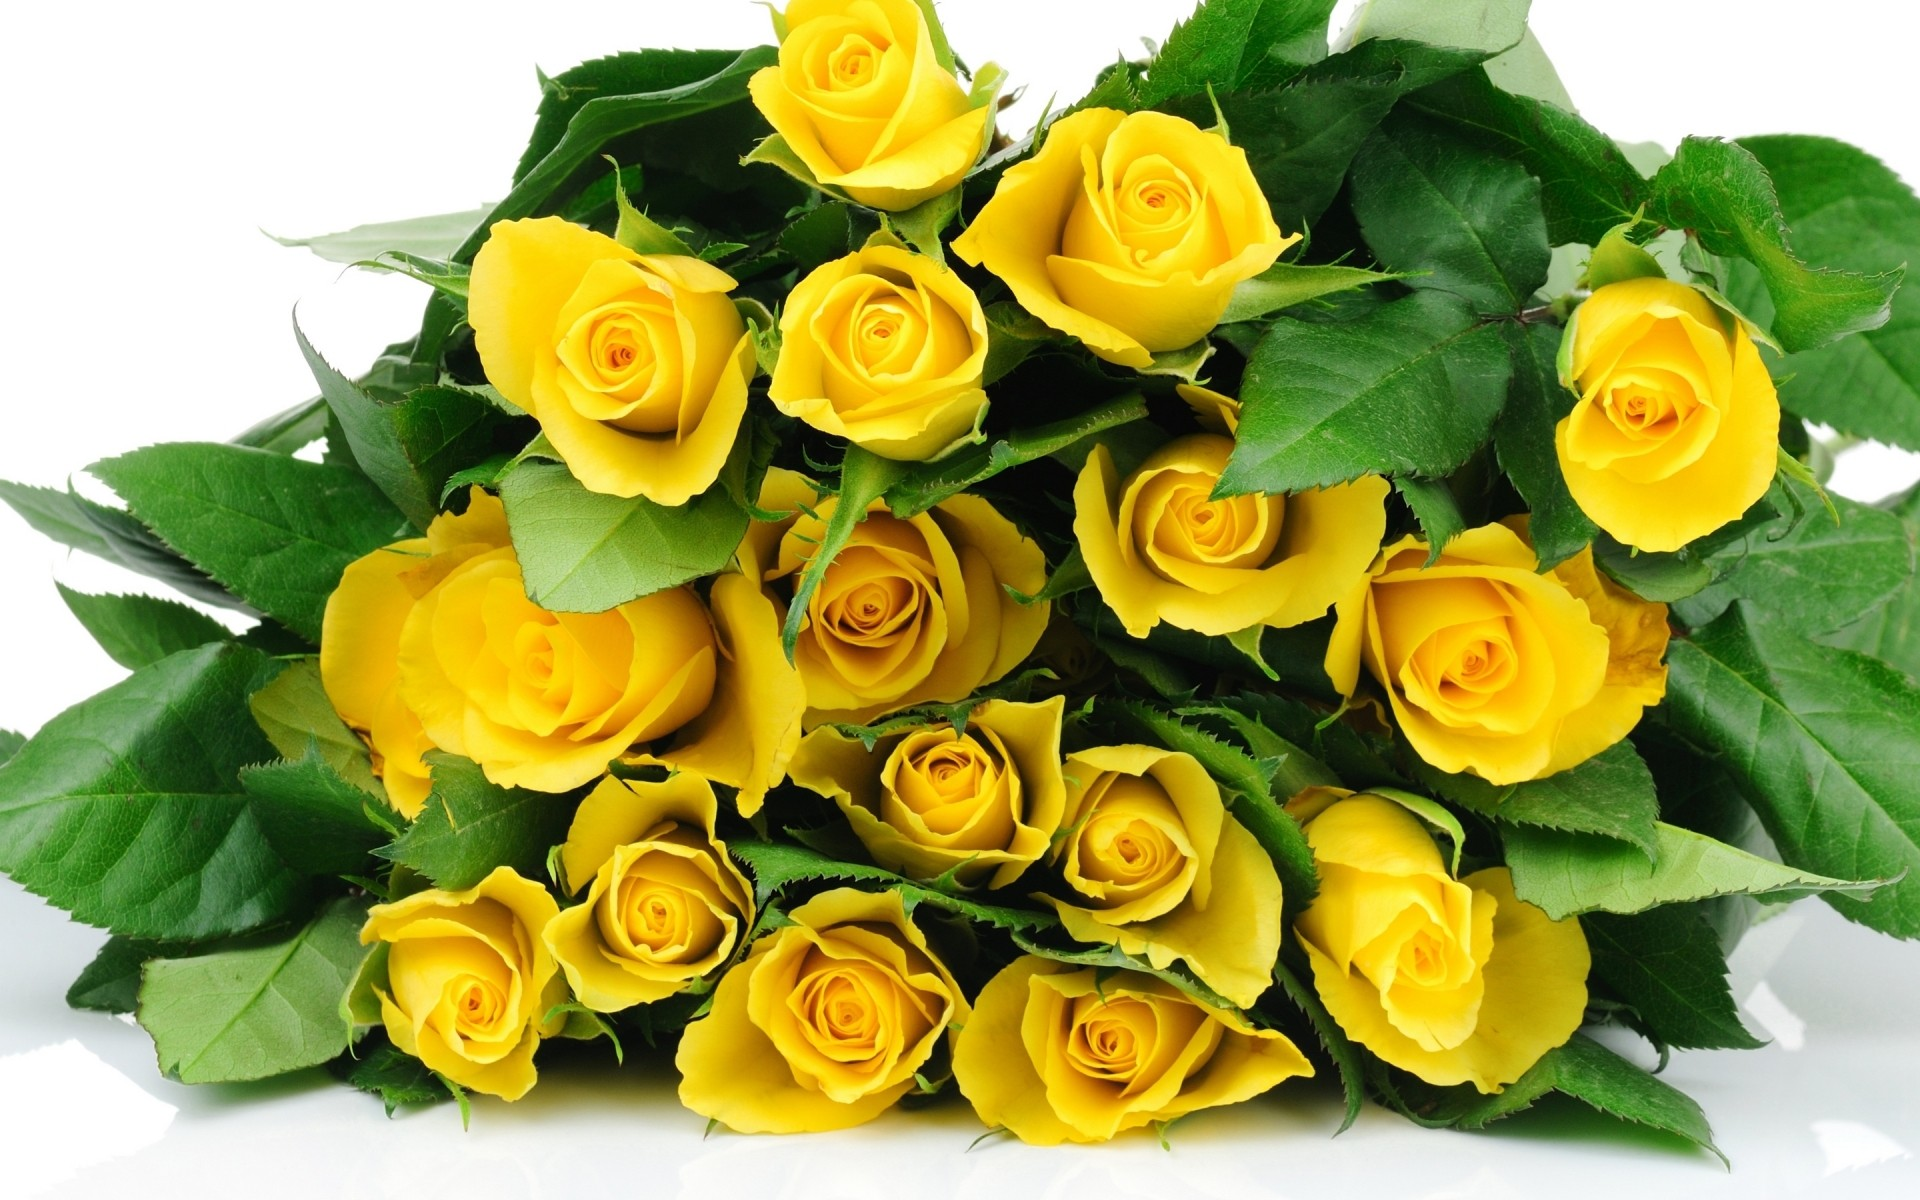 Yellow Roses Bucket Android Wallpapers For Free